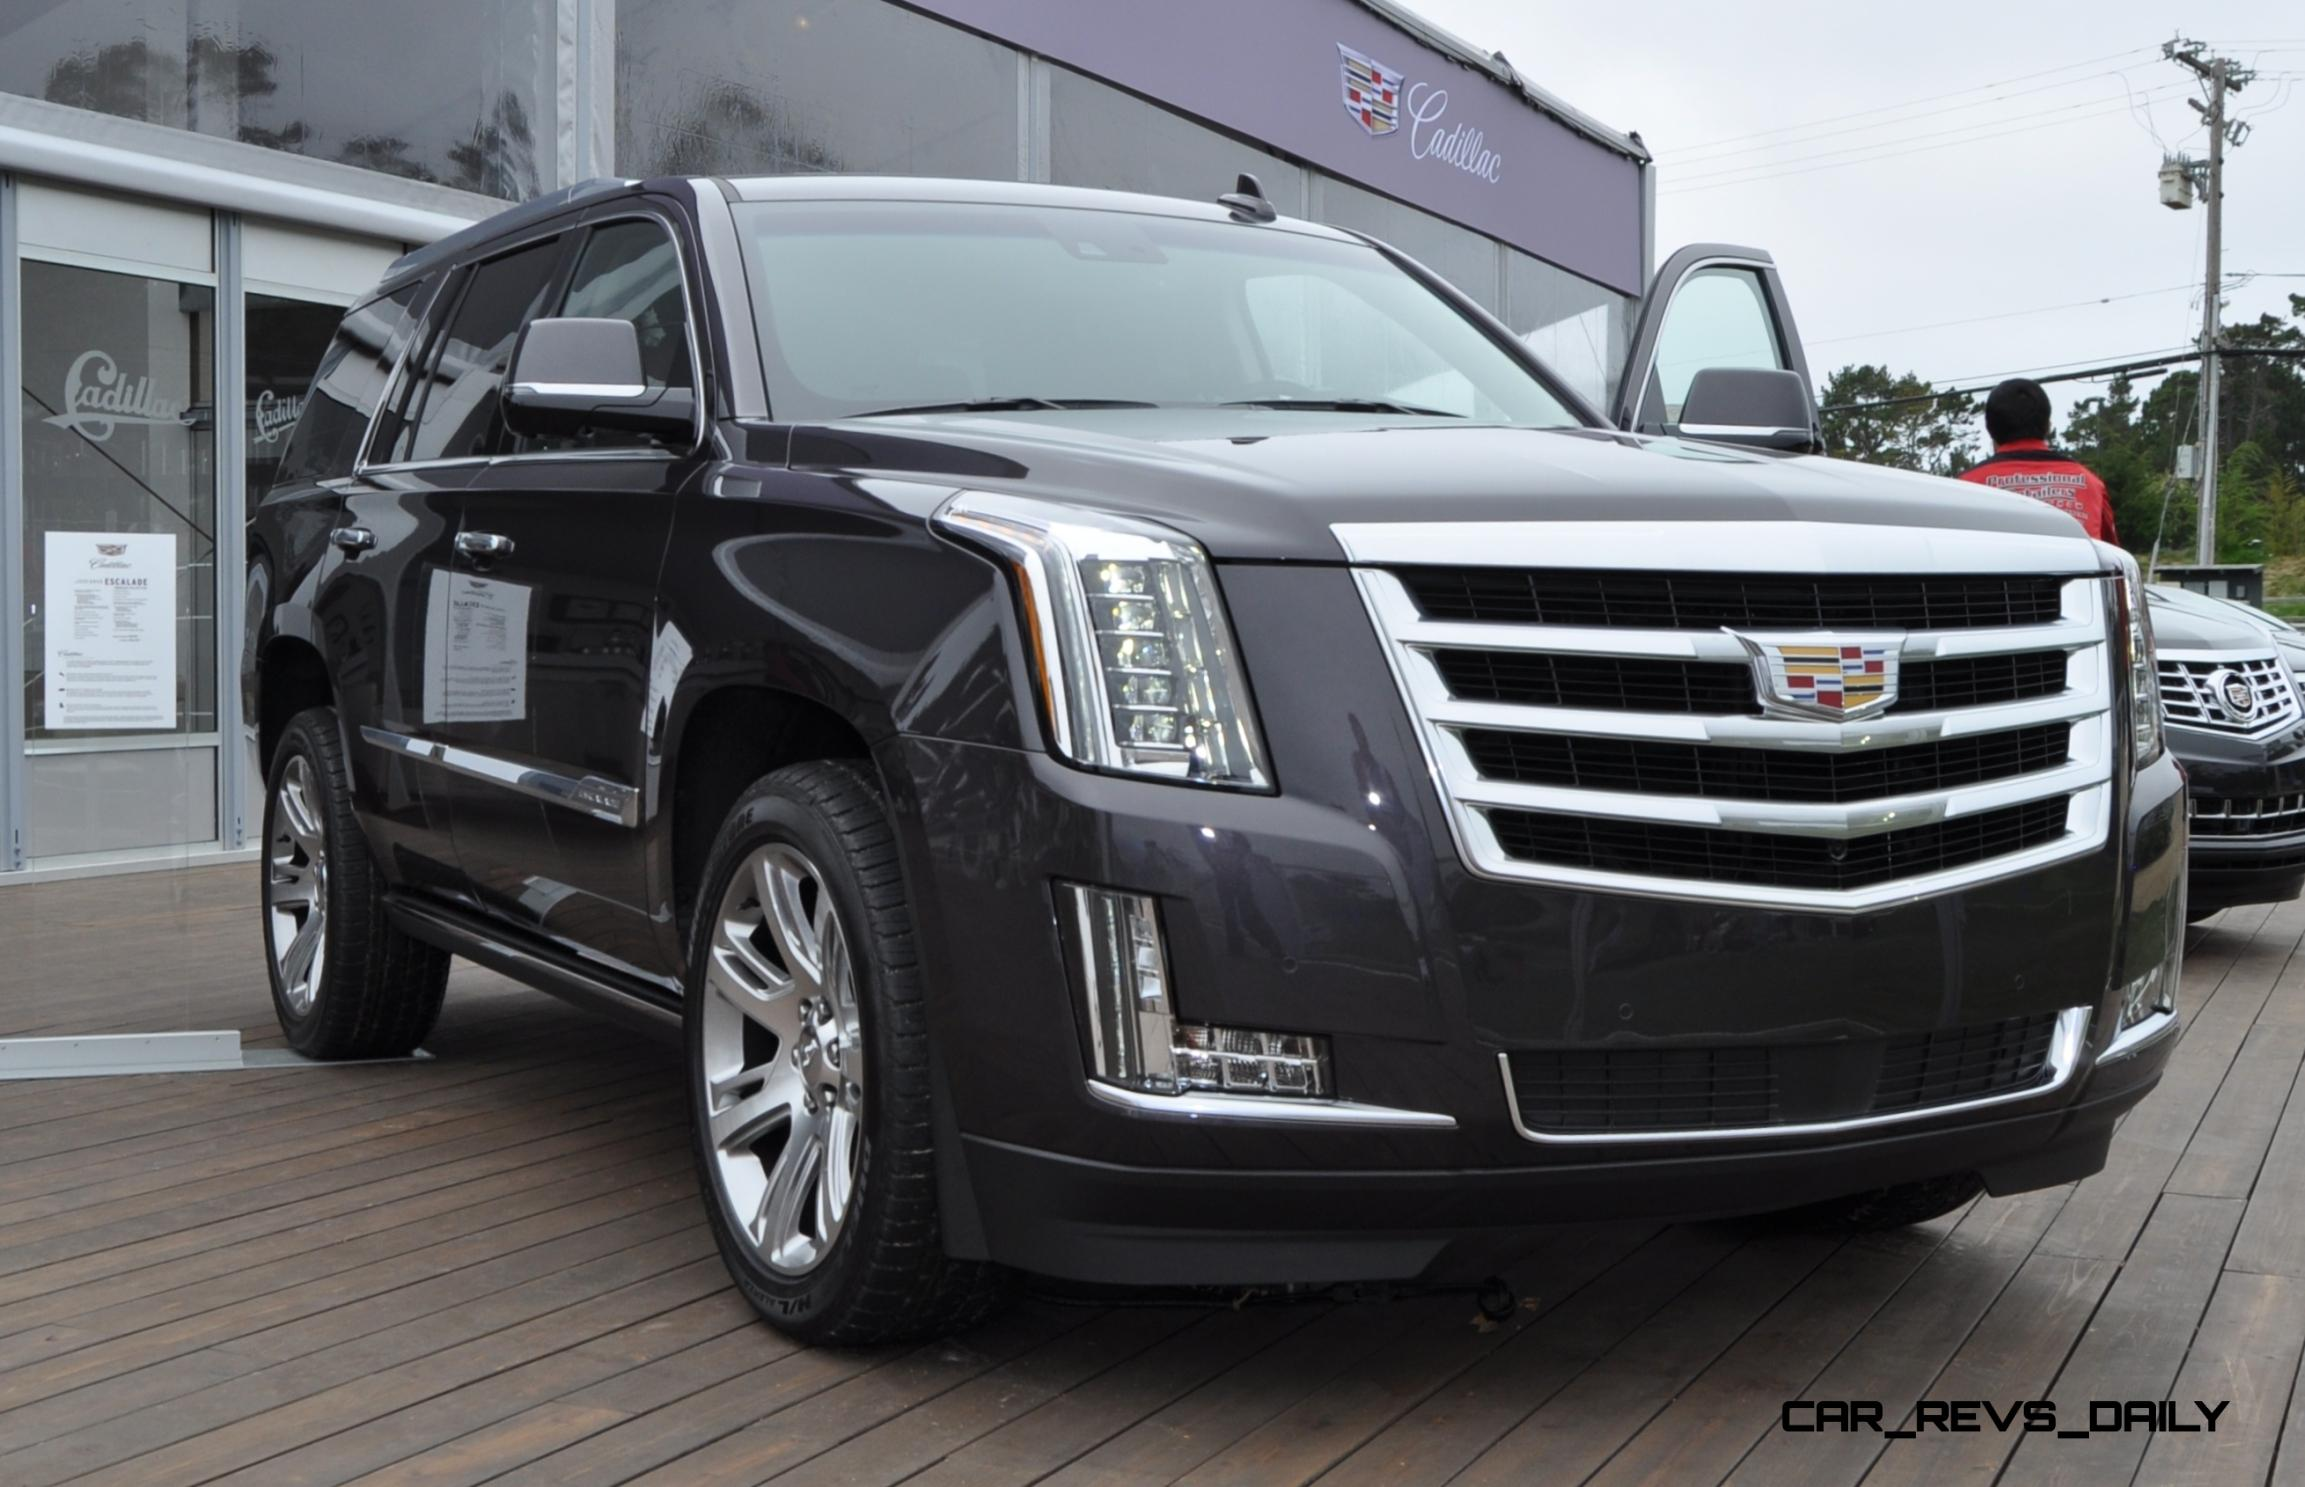 90 all new photos 2015 cadillac escalade platinum world debut in pebble beach. Black Bedroom Furniture Sets. Home Design Ideas